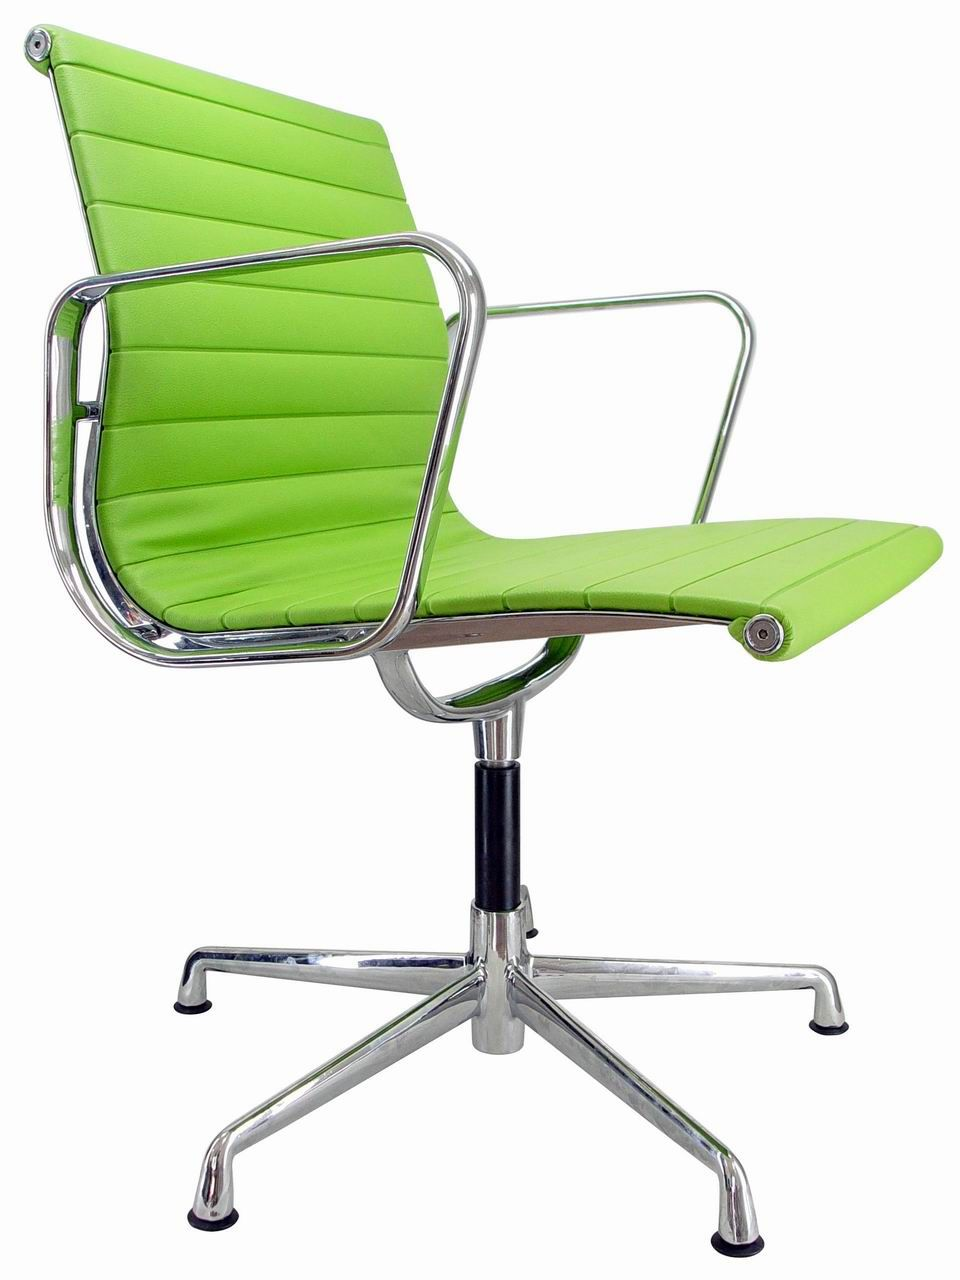 Image result for green eames office chair Adjustable